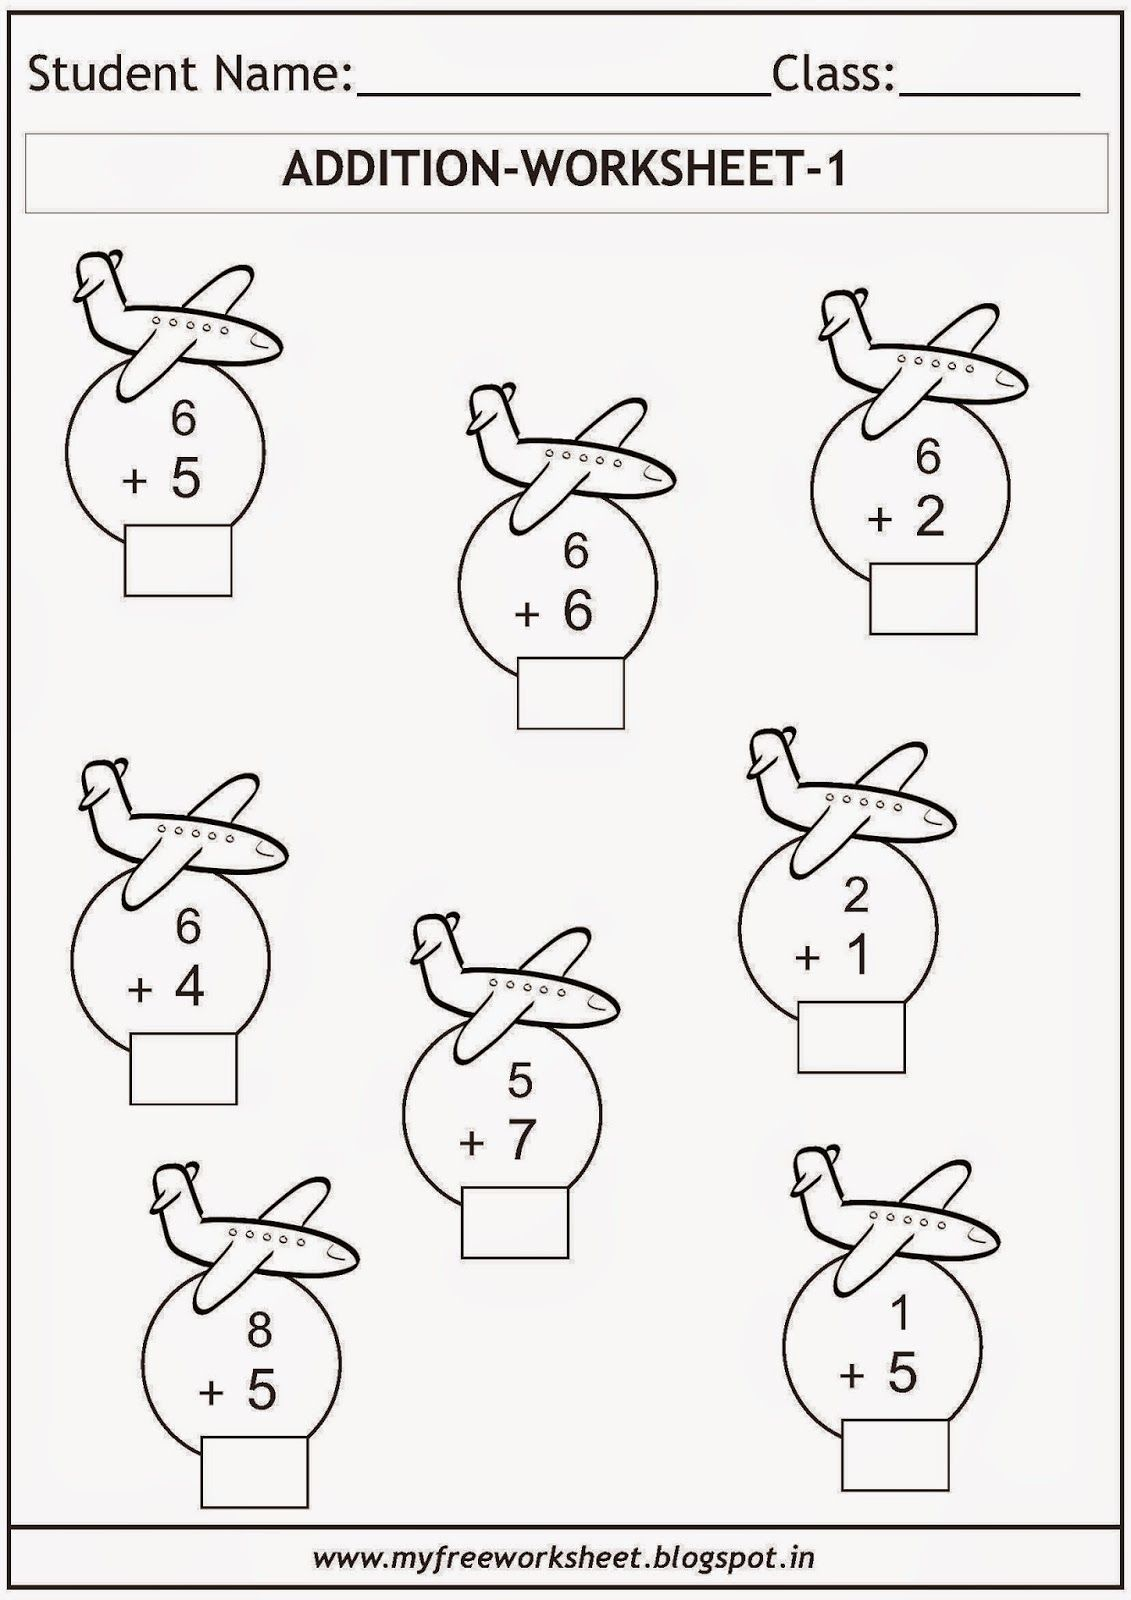 Free Printable Math Worksheets For Grade 1 Kids Includes A Variety Of Topics Such As Adding 1st Grade Worksheets Addition Worksheets Free Printable Worksheets Worksheet adding single digit numbers